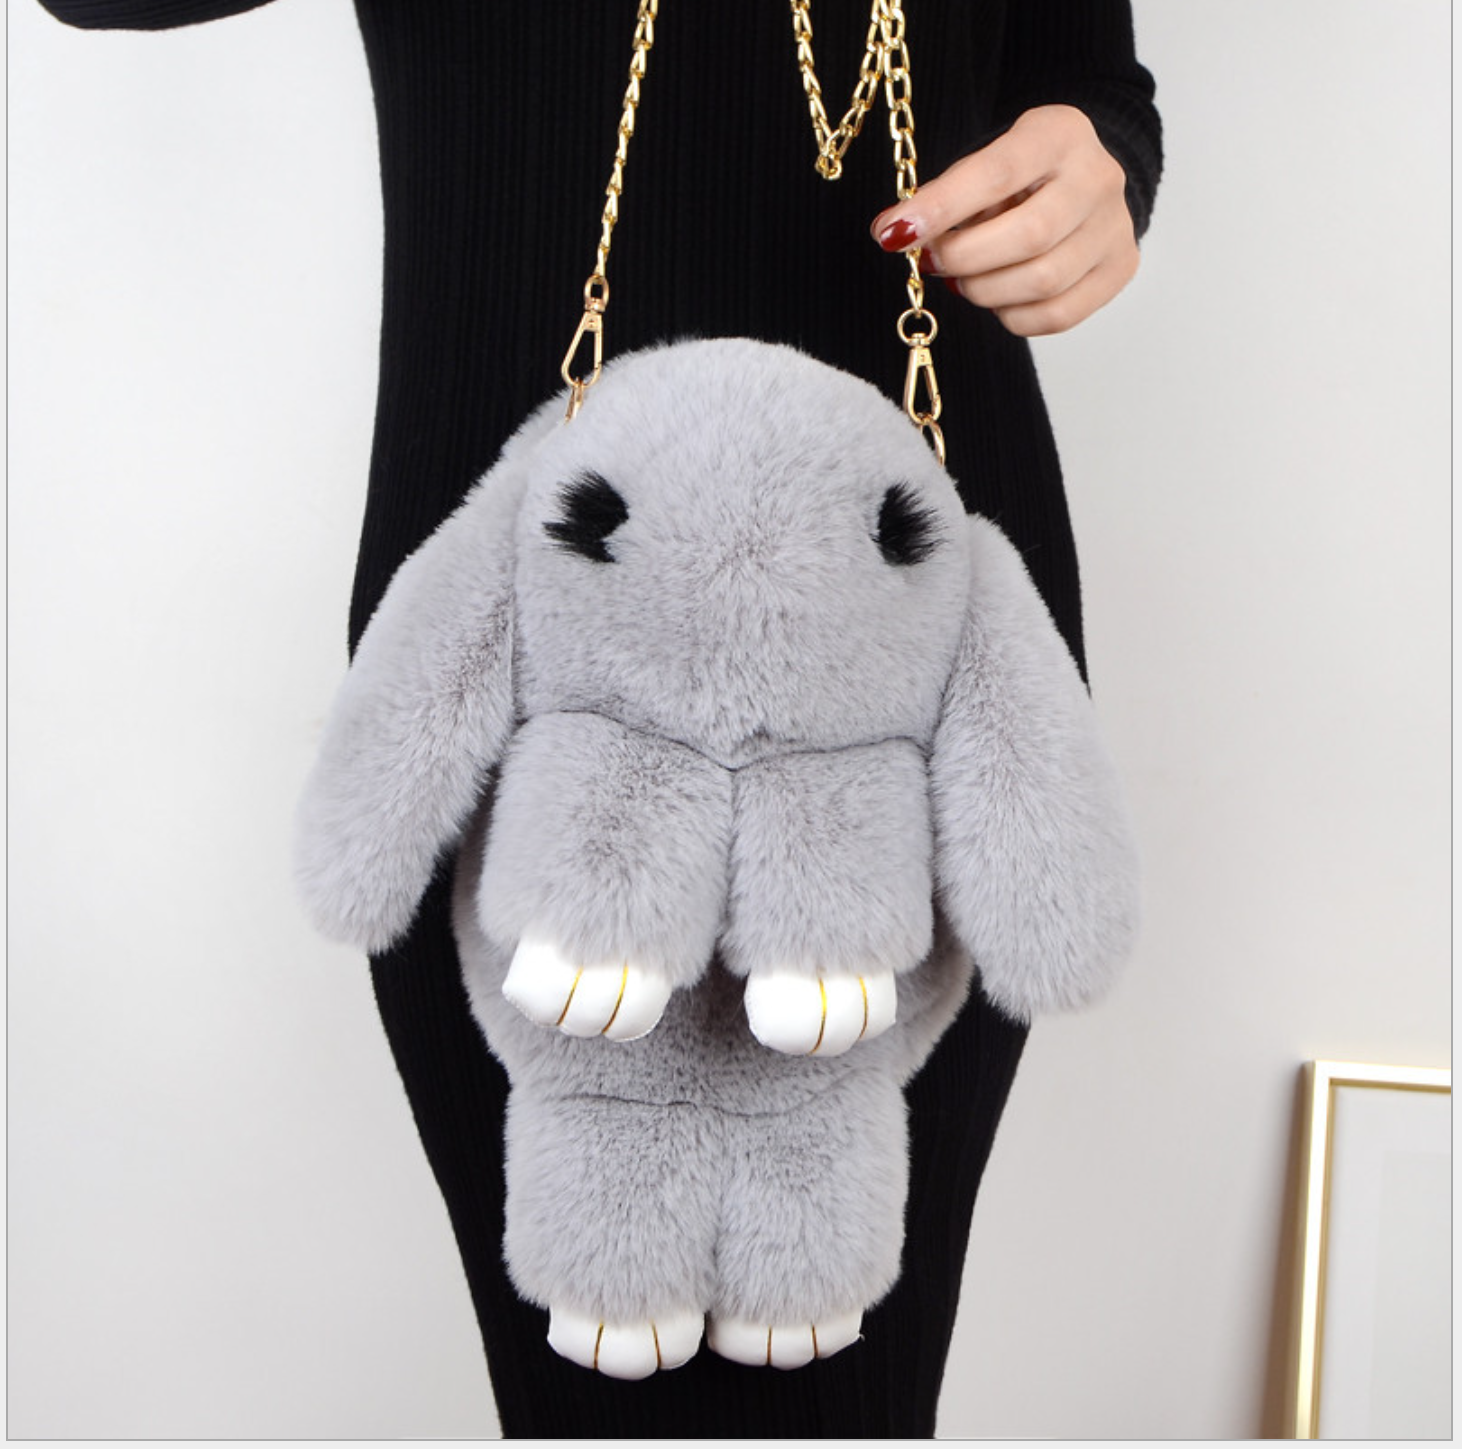 Backpacker Handbags Rabbit Plush Cross-Shoulder Cute Dead Imitation title=